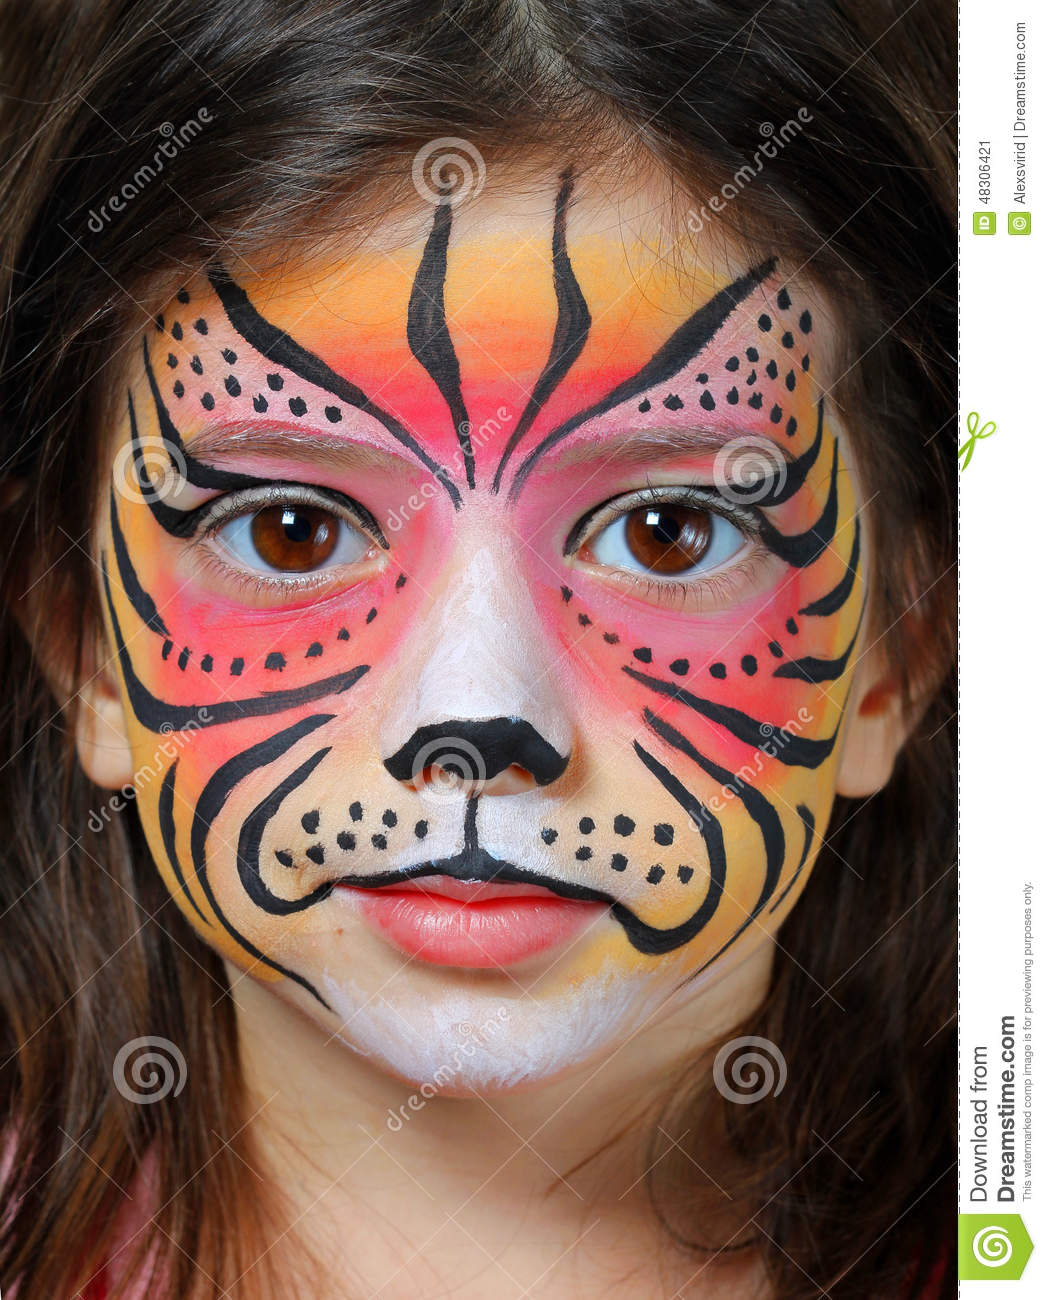 tiger face paint stock image image of posing makeup 48306421